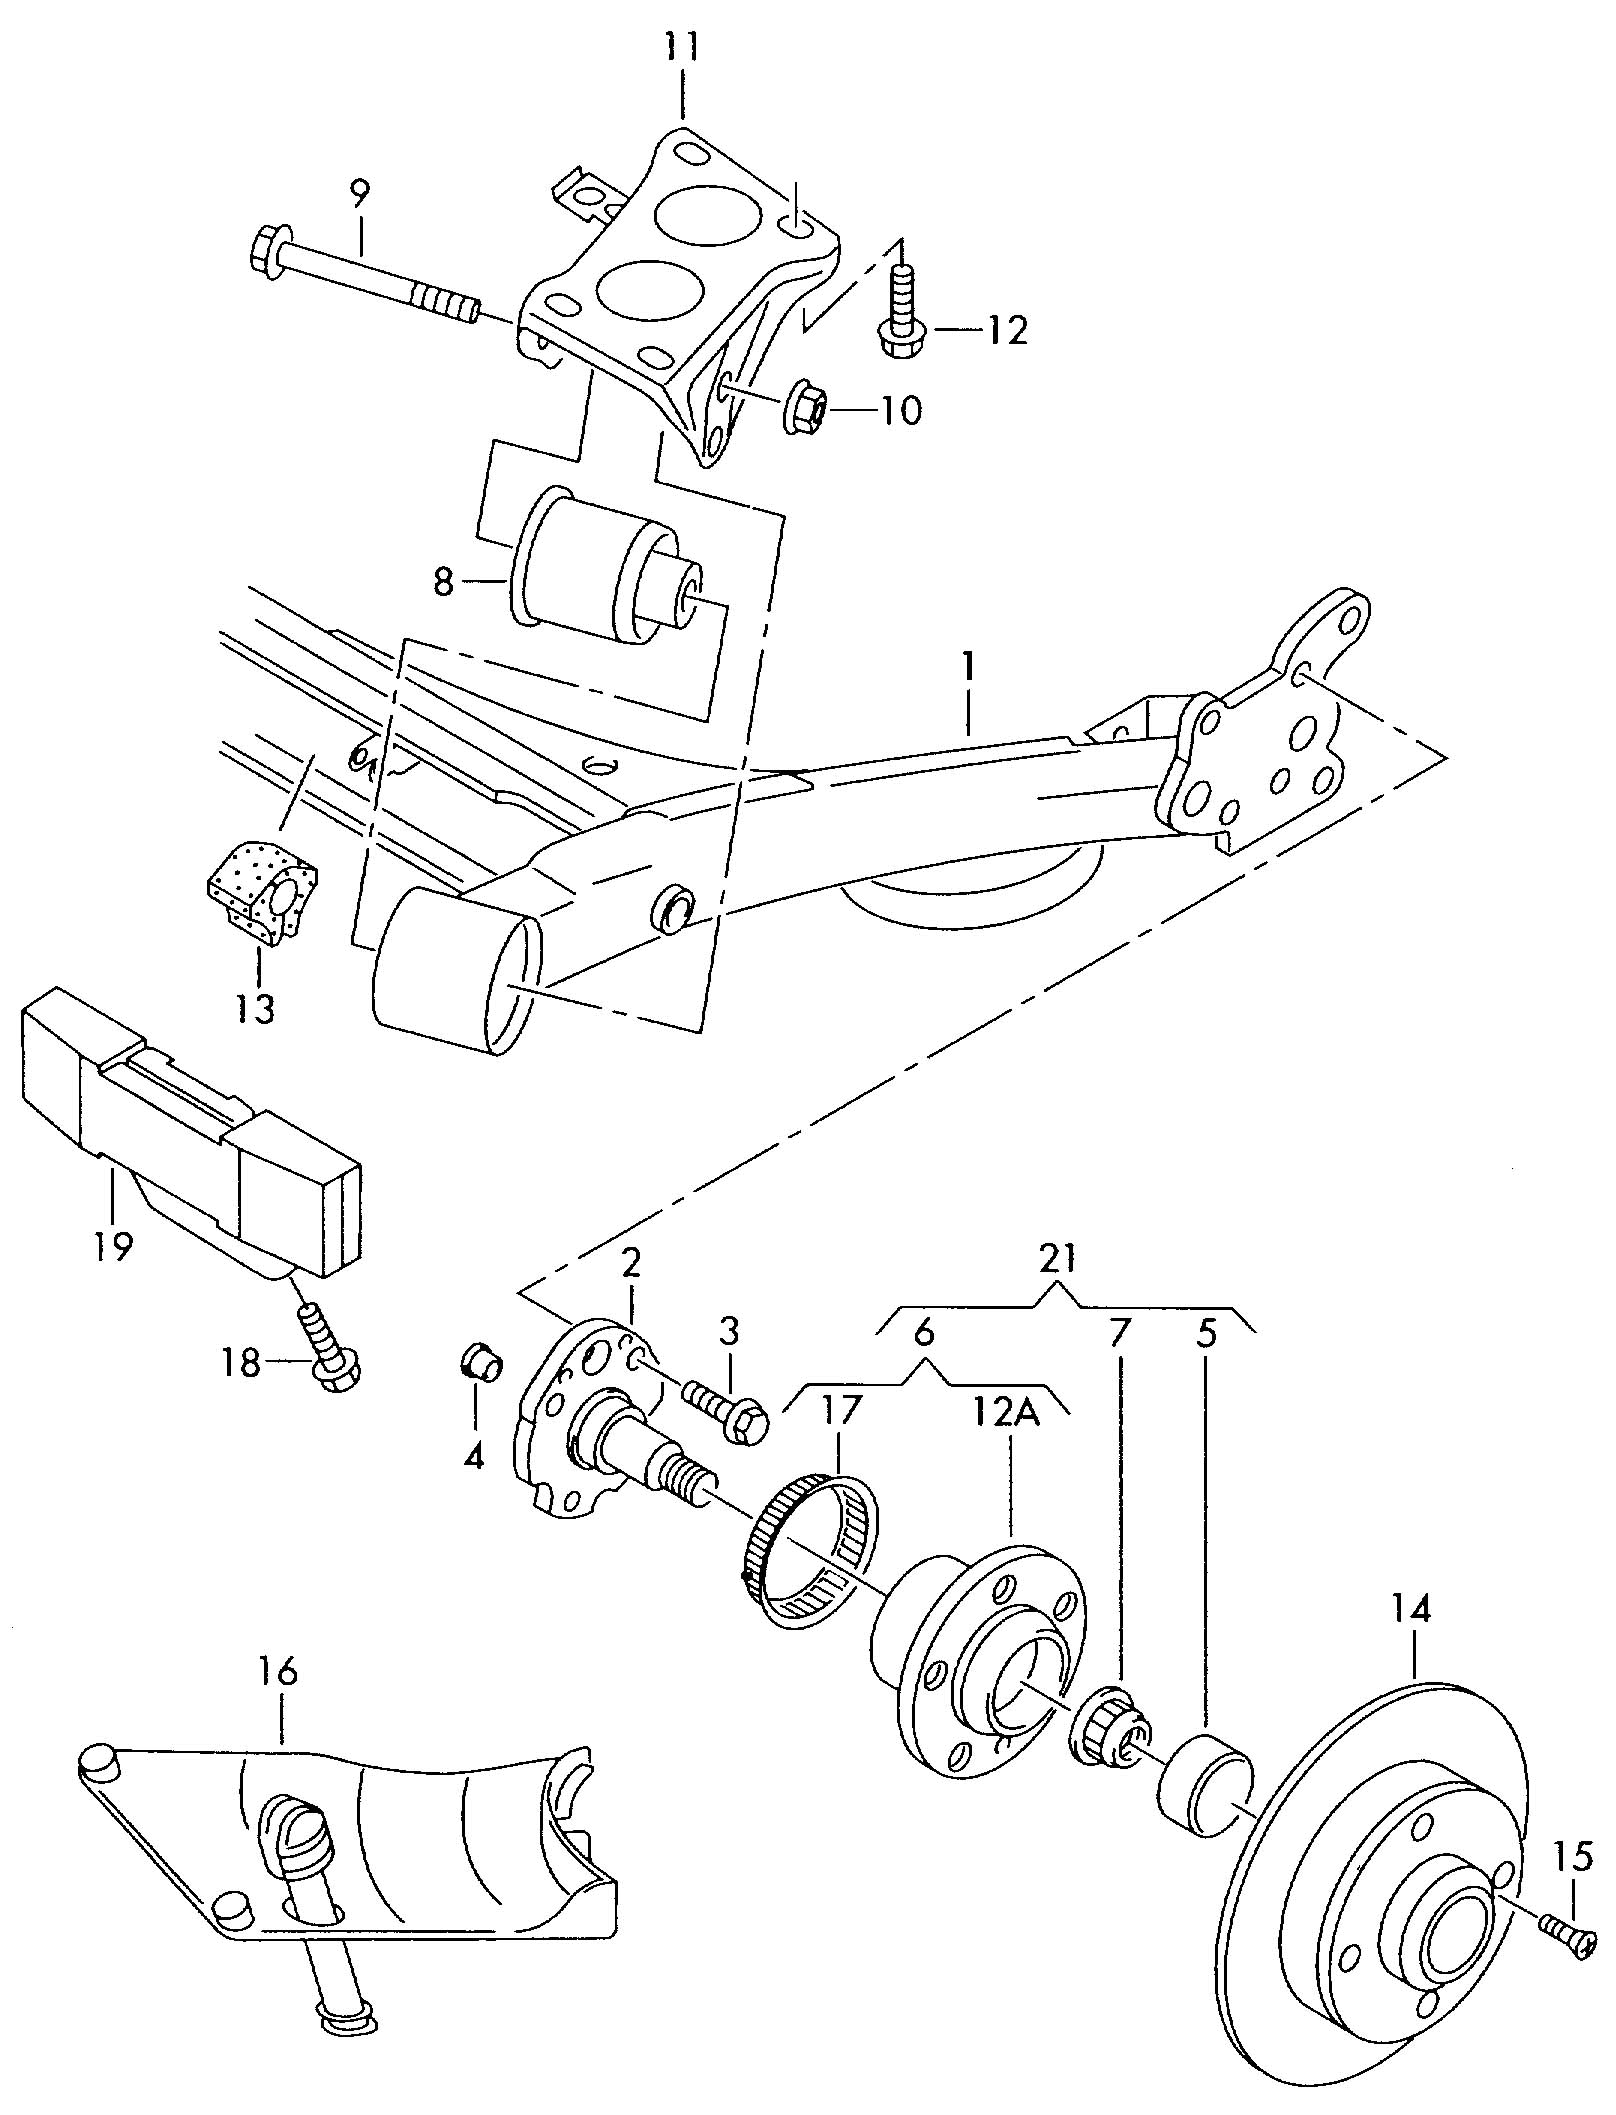 Volkswagen Jetta Comprising Wheel Bearing With Mounting